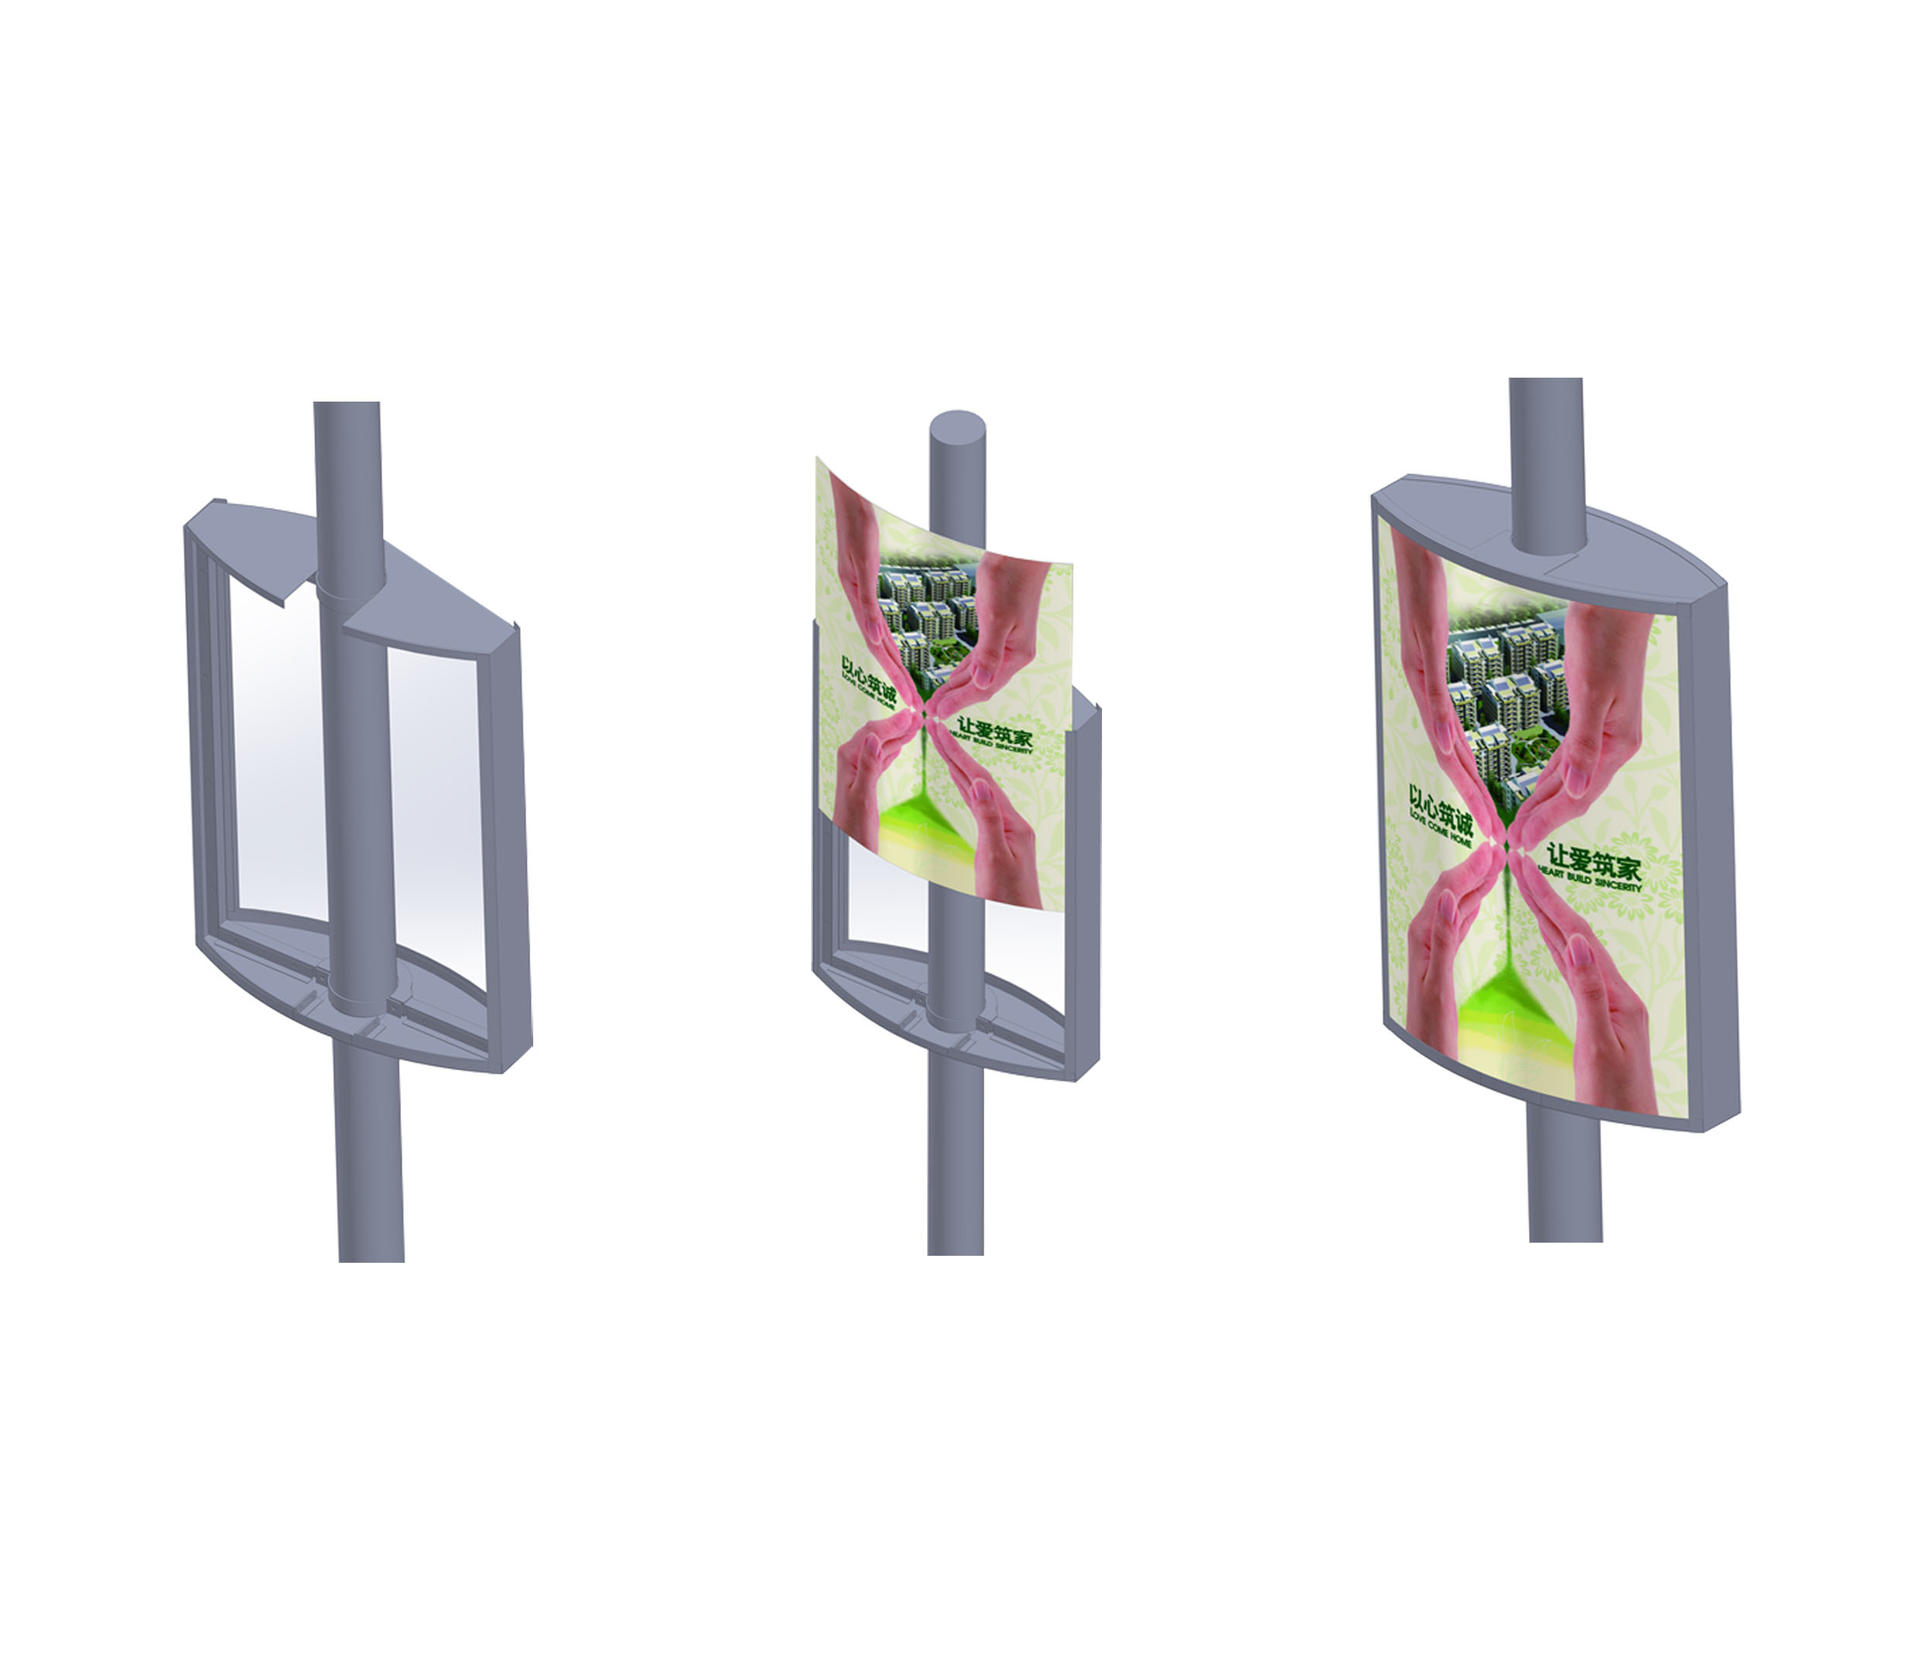 outdoor pole led display vending for outdoor advertising YEROO